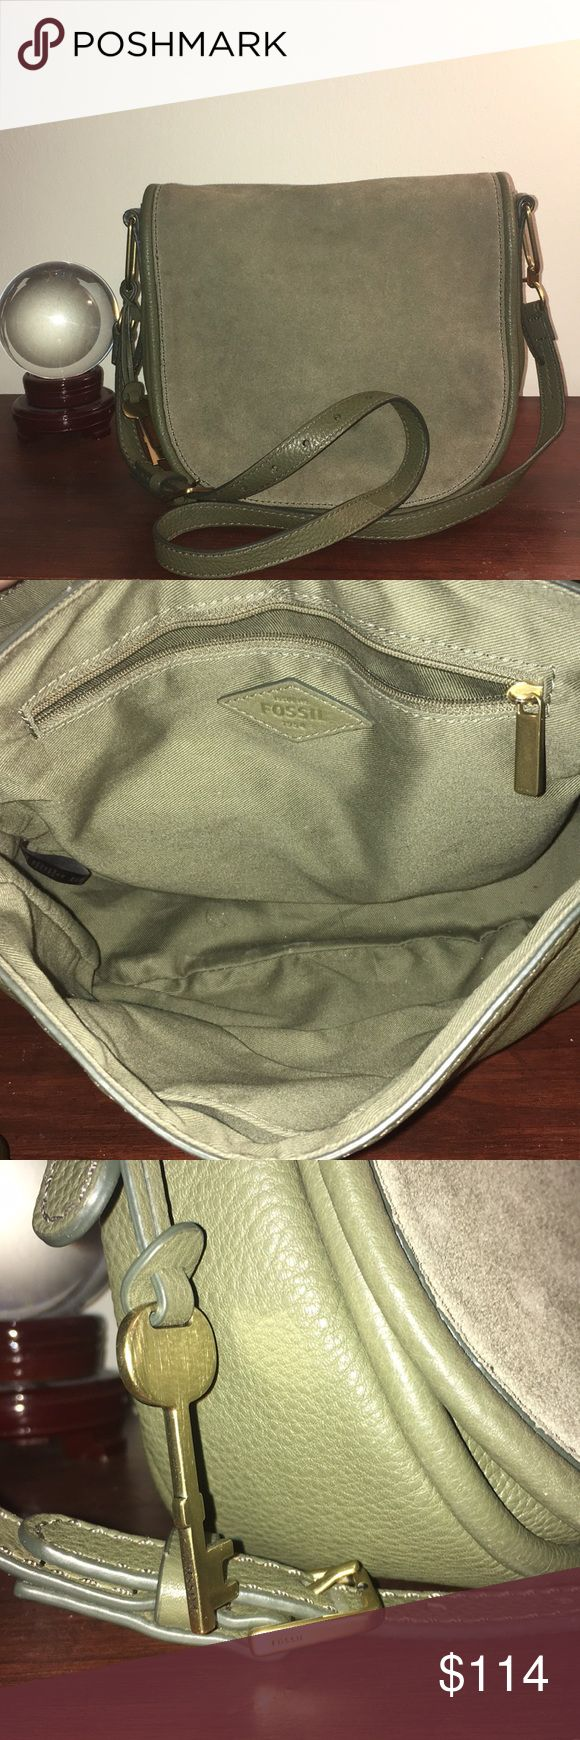 Fossil bag Forrest green fossil crossbody. Green sued flap  buckle adjust strap. Very lightly used like new. Super cute, not too small good medium sized cross body. Fossil Bags Crossbody Bags